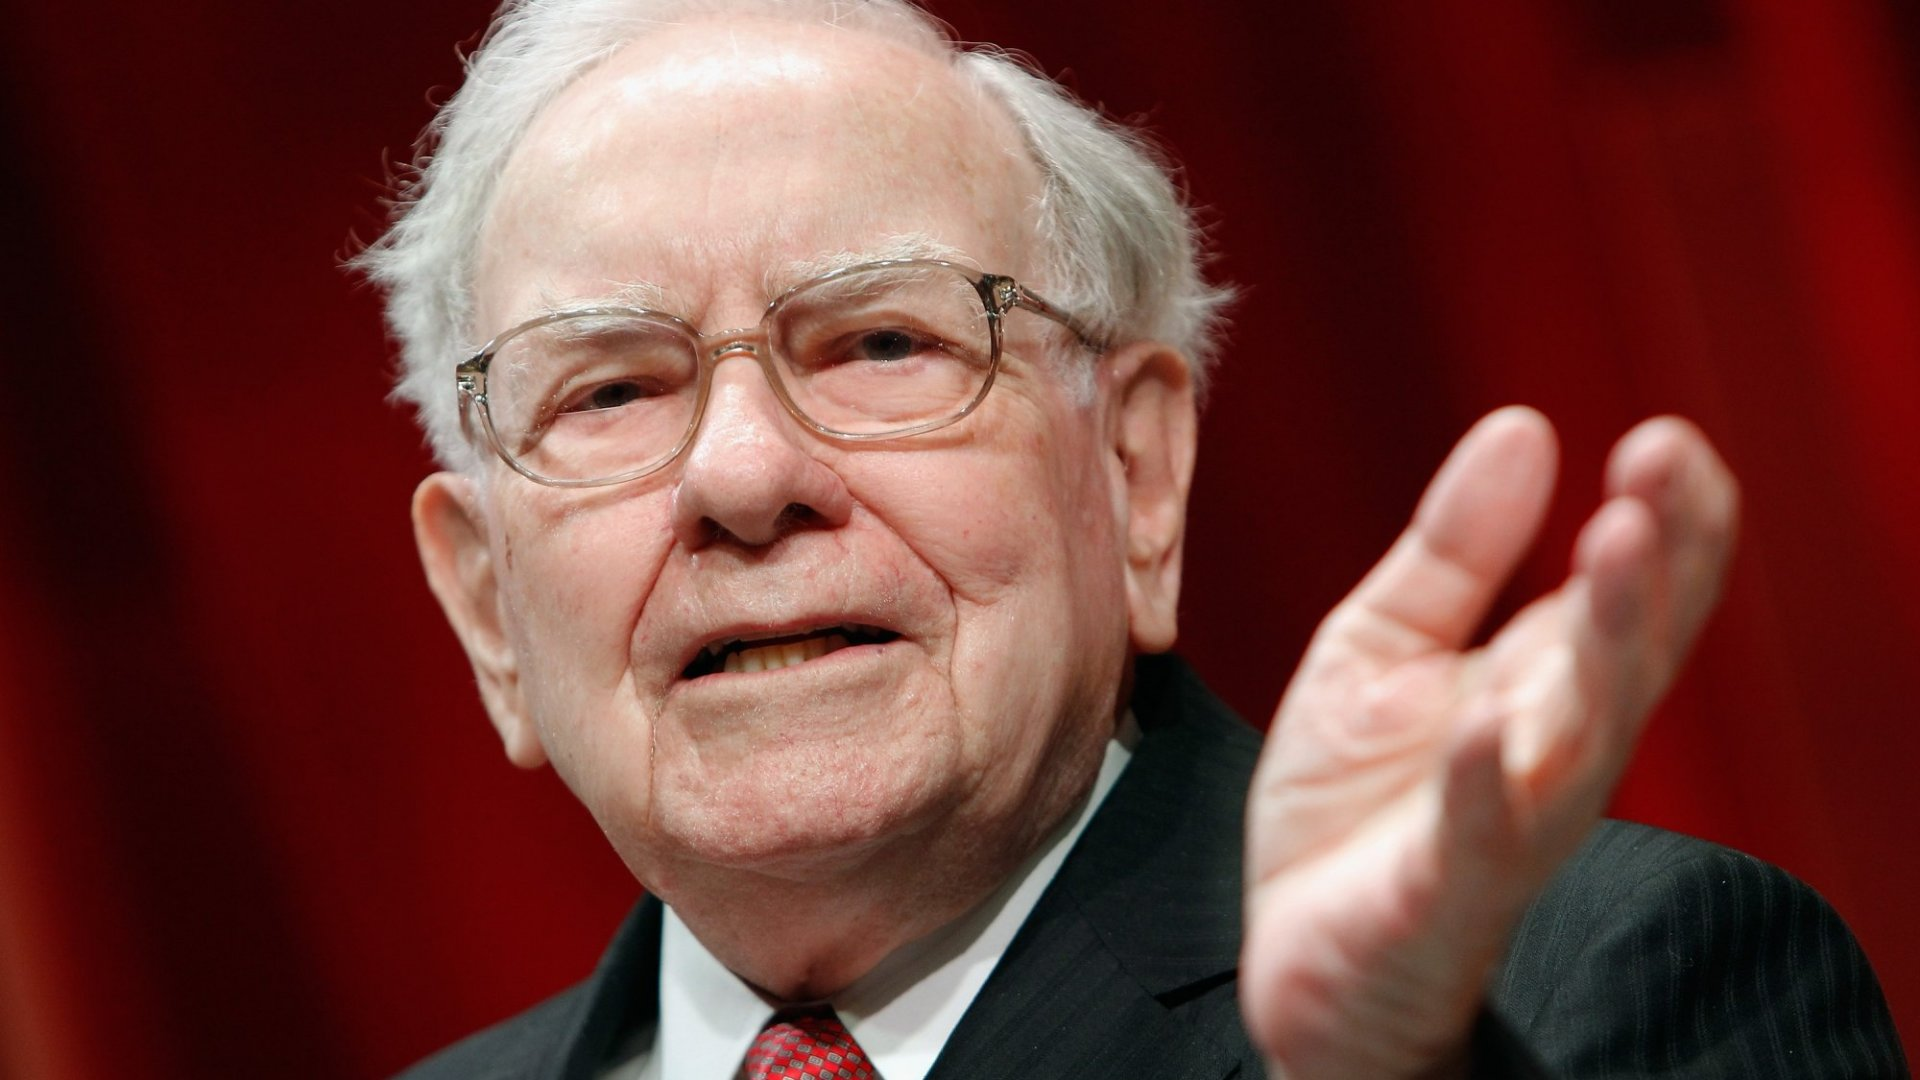 Warren Buffett Says Your Greatest Measure of Success at the End of Your Life Comes Down to 1 Word